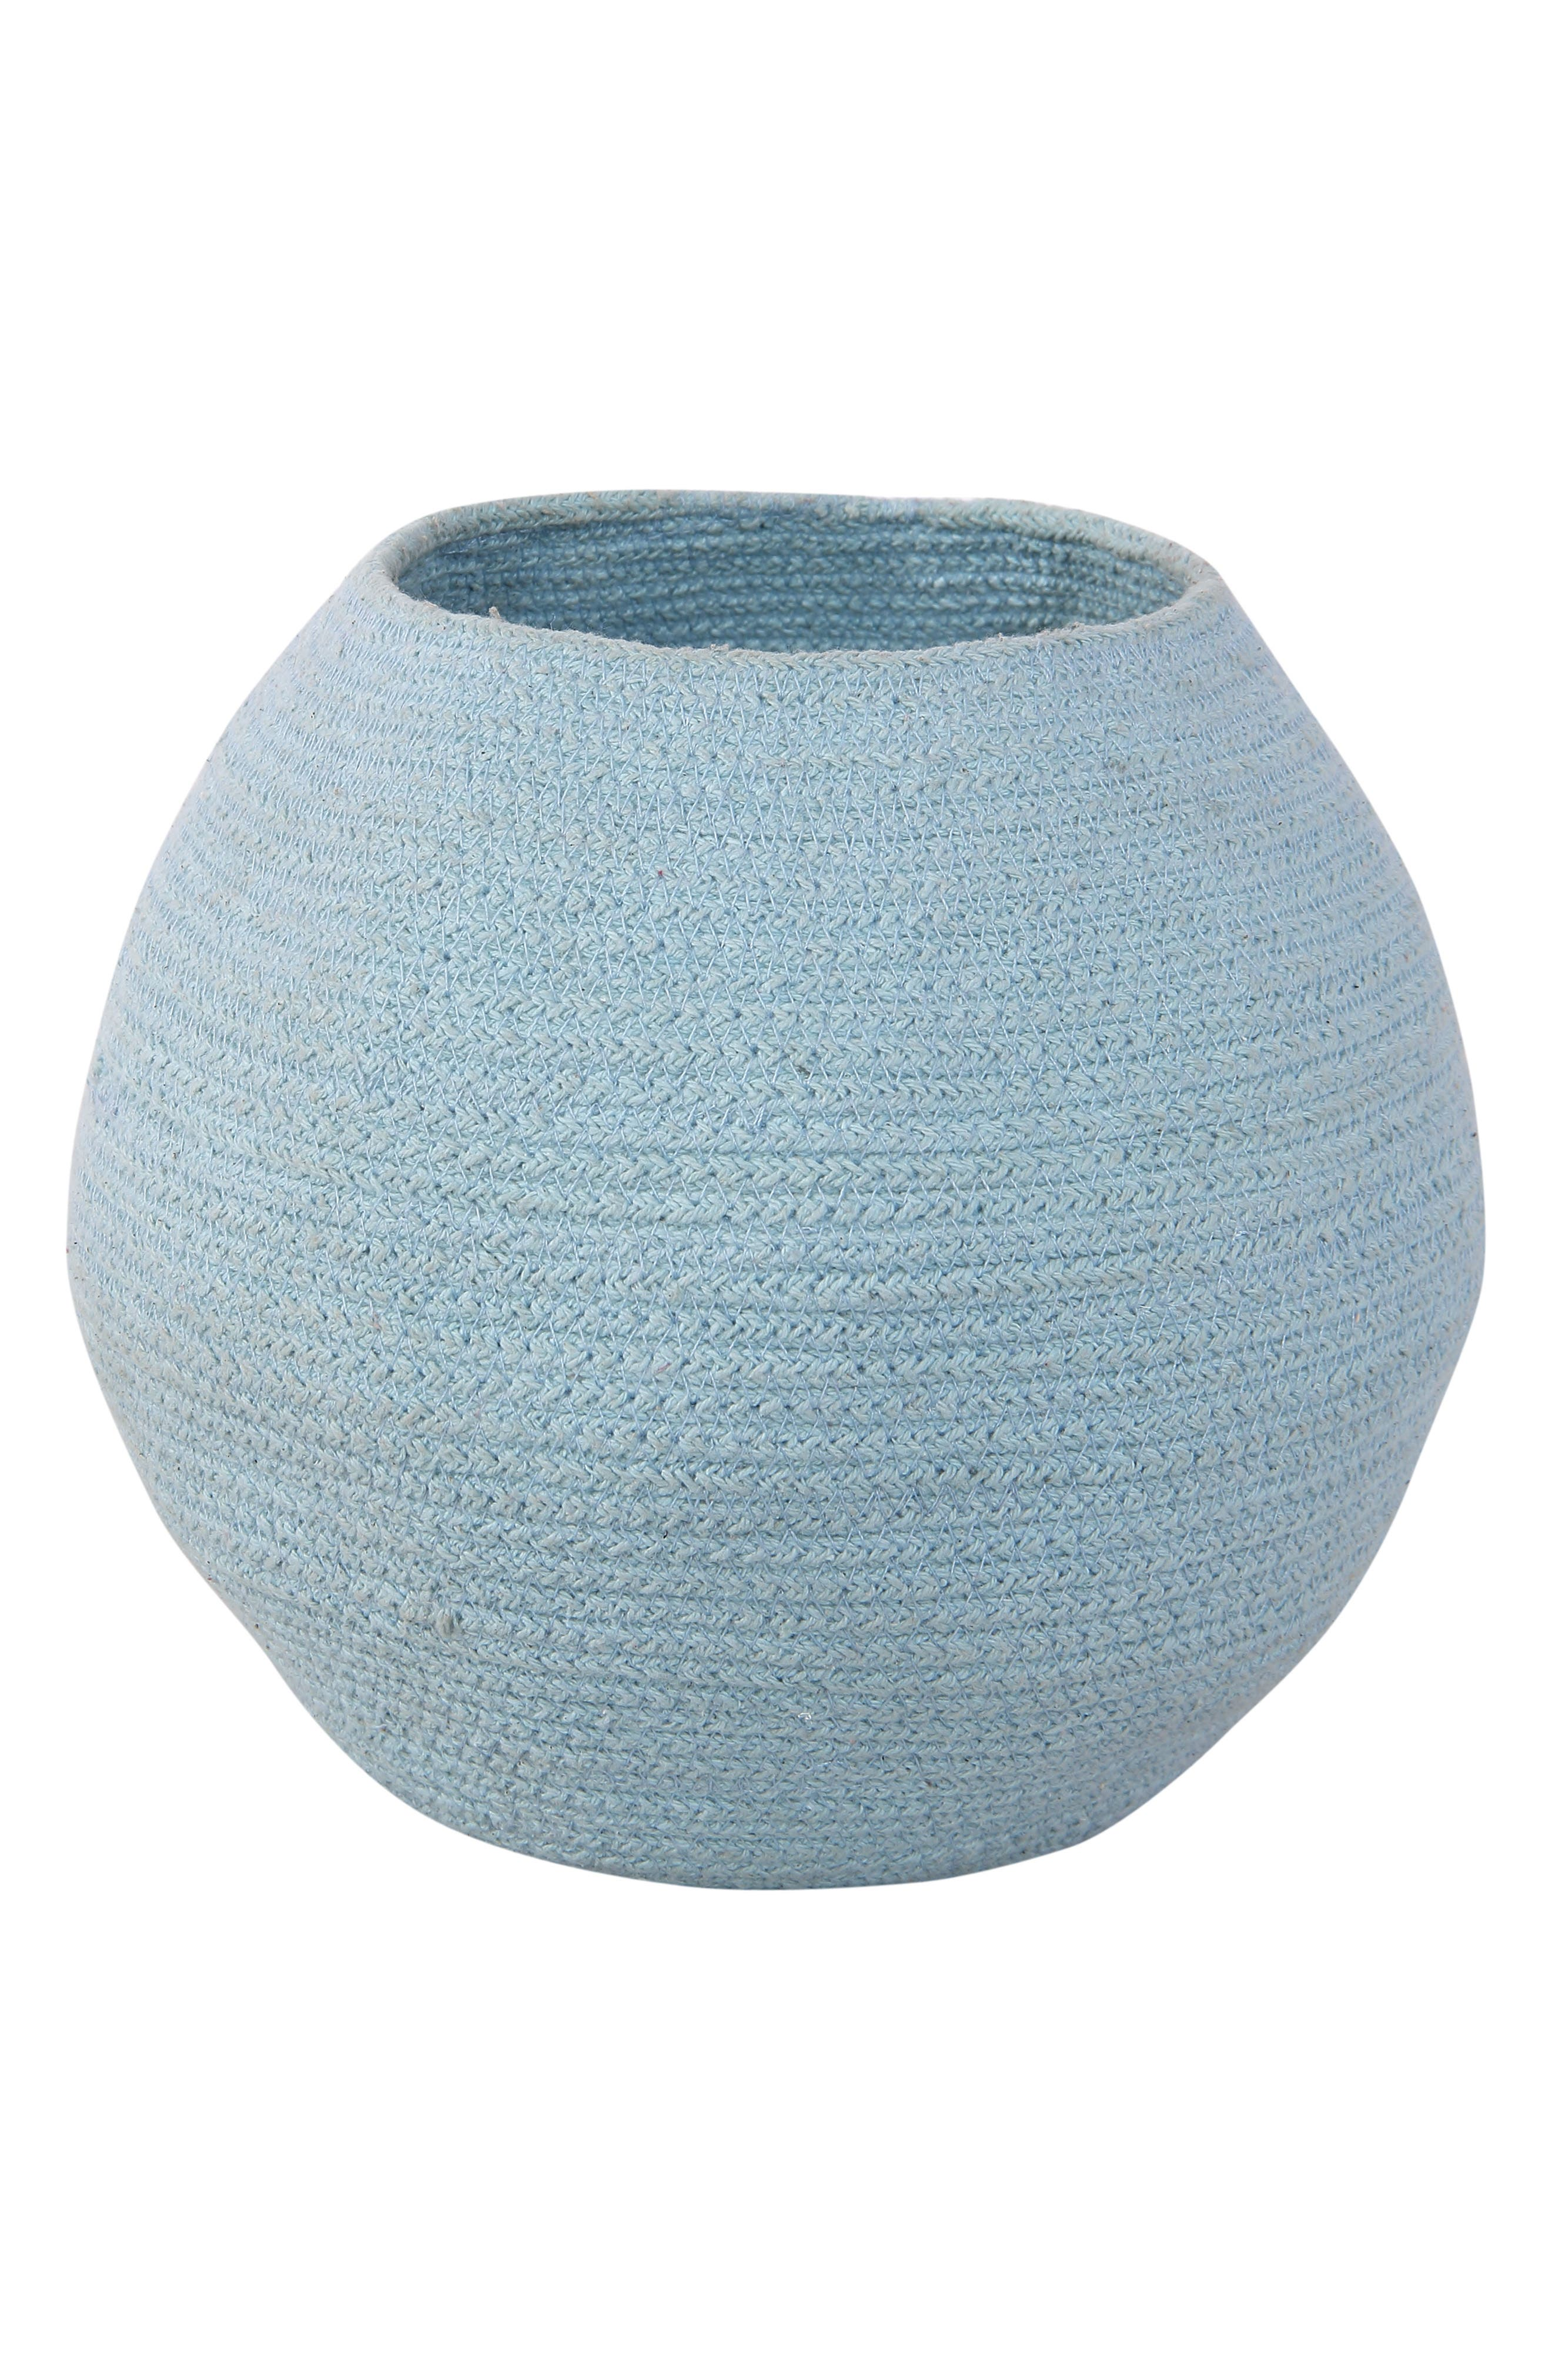 A round shape refines a handmade basket that serves a multitude of uses, from toy storage in the nursery to a distinctive planter cover. Style Name: Lorena Canals Bola Basket. Style Number: 5869417. Available in stores.